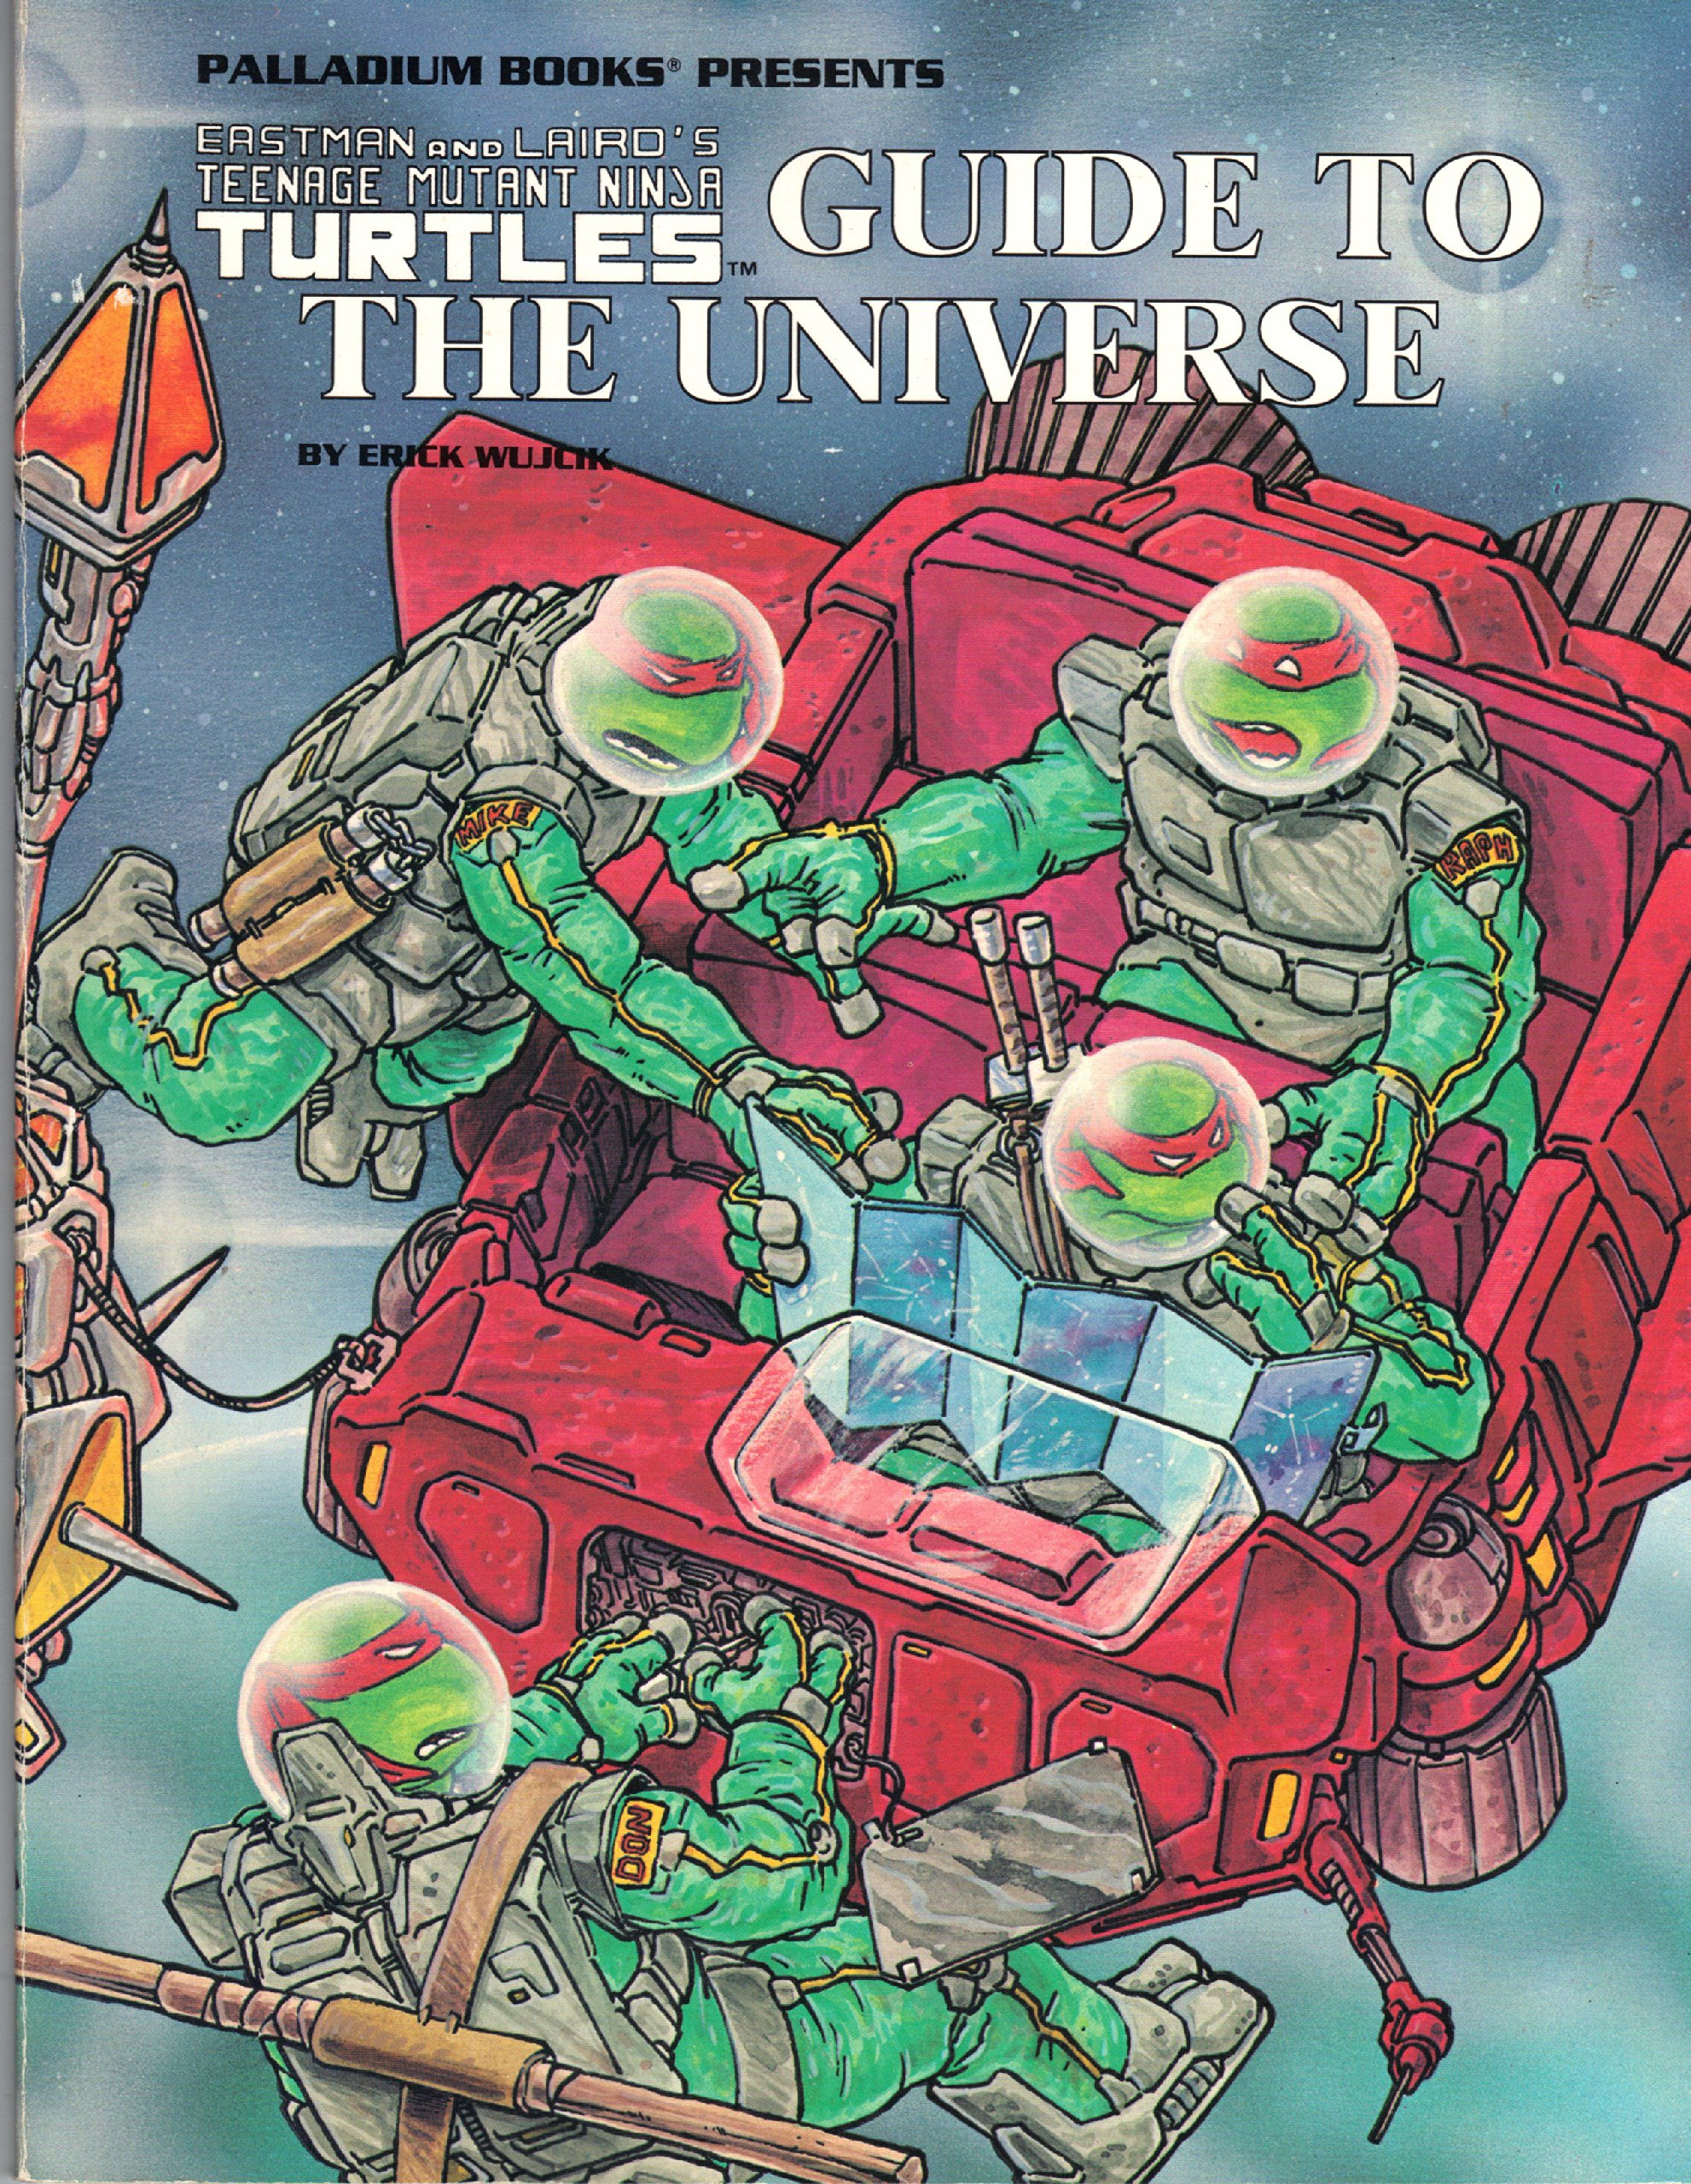 Guide to the Universe/Eastman and Lairds Teenage Mutant ...